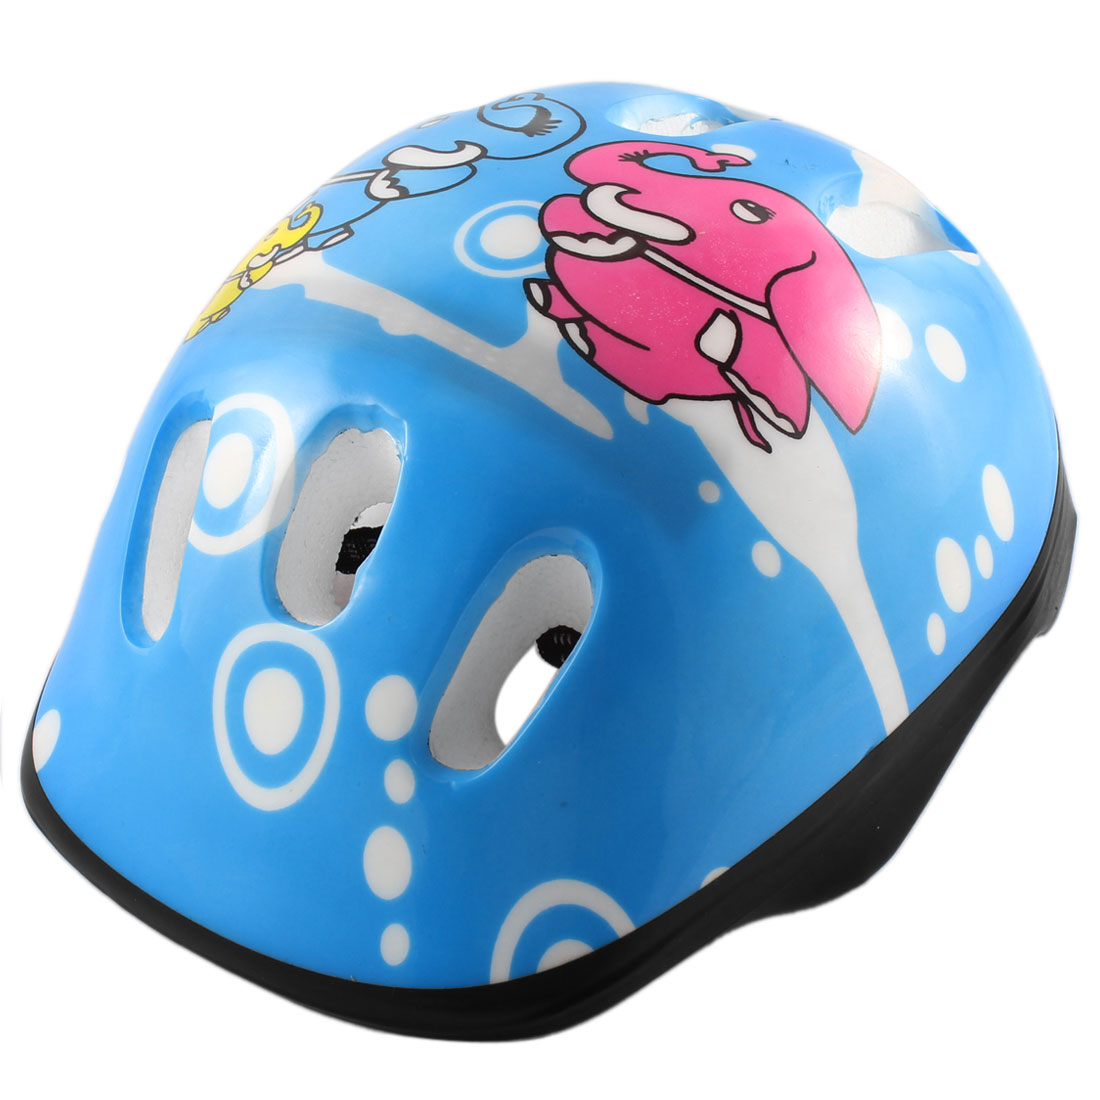 Cycling Skating Elephant Printed Protective Student Helmet Blue Fushcia